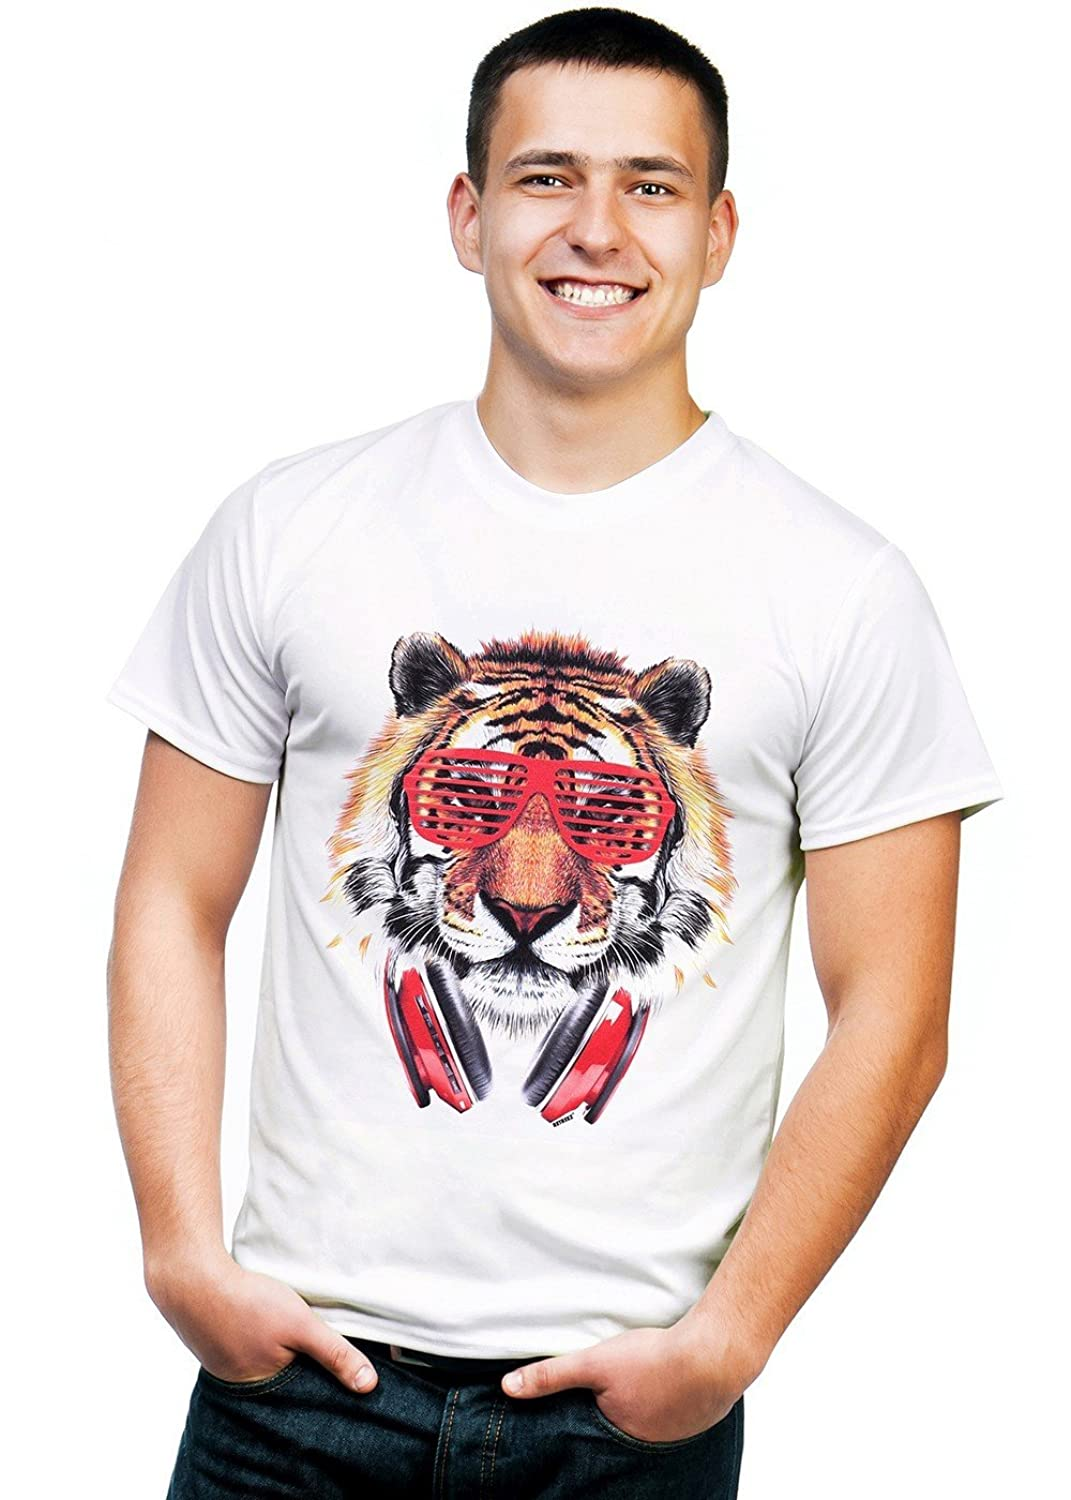 0c1907fc Unisex, Regular Fit T-Shirt Single Side Direct to Garment Printed Printed  with Eco-friendly water based inks. Recommended Care Guide: Machine ...